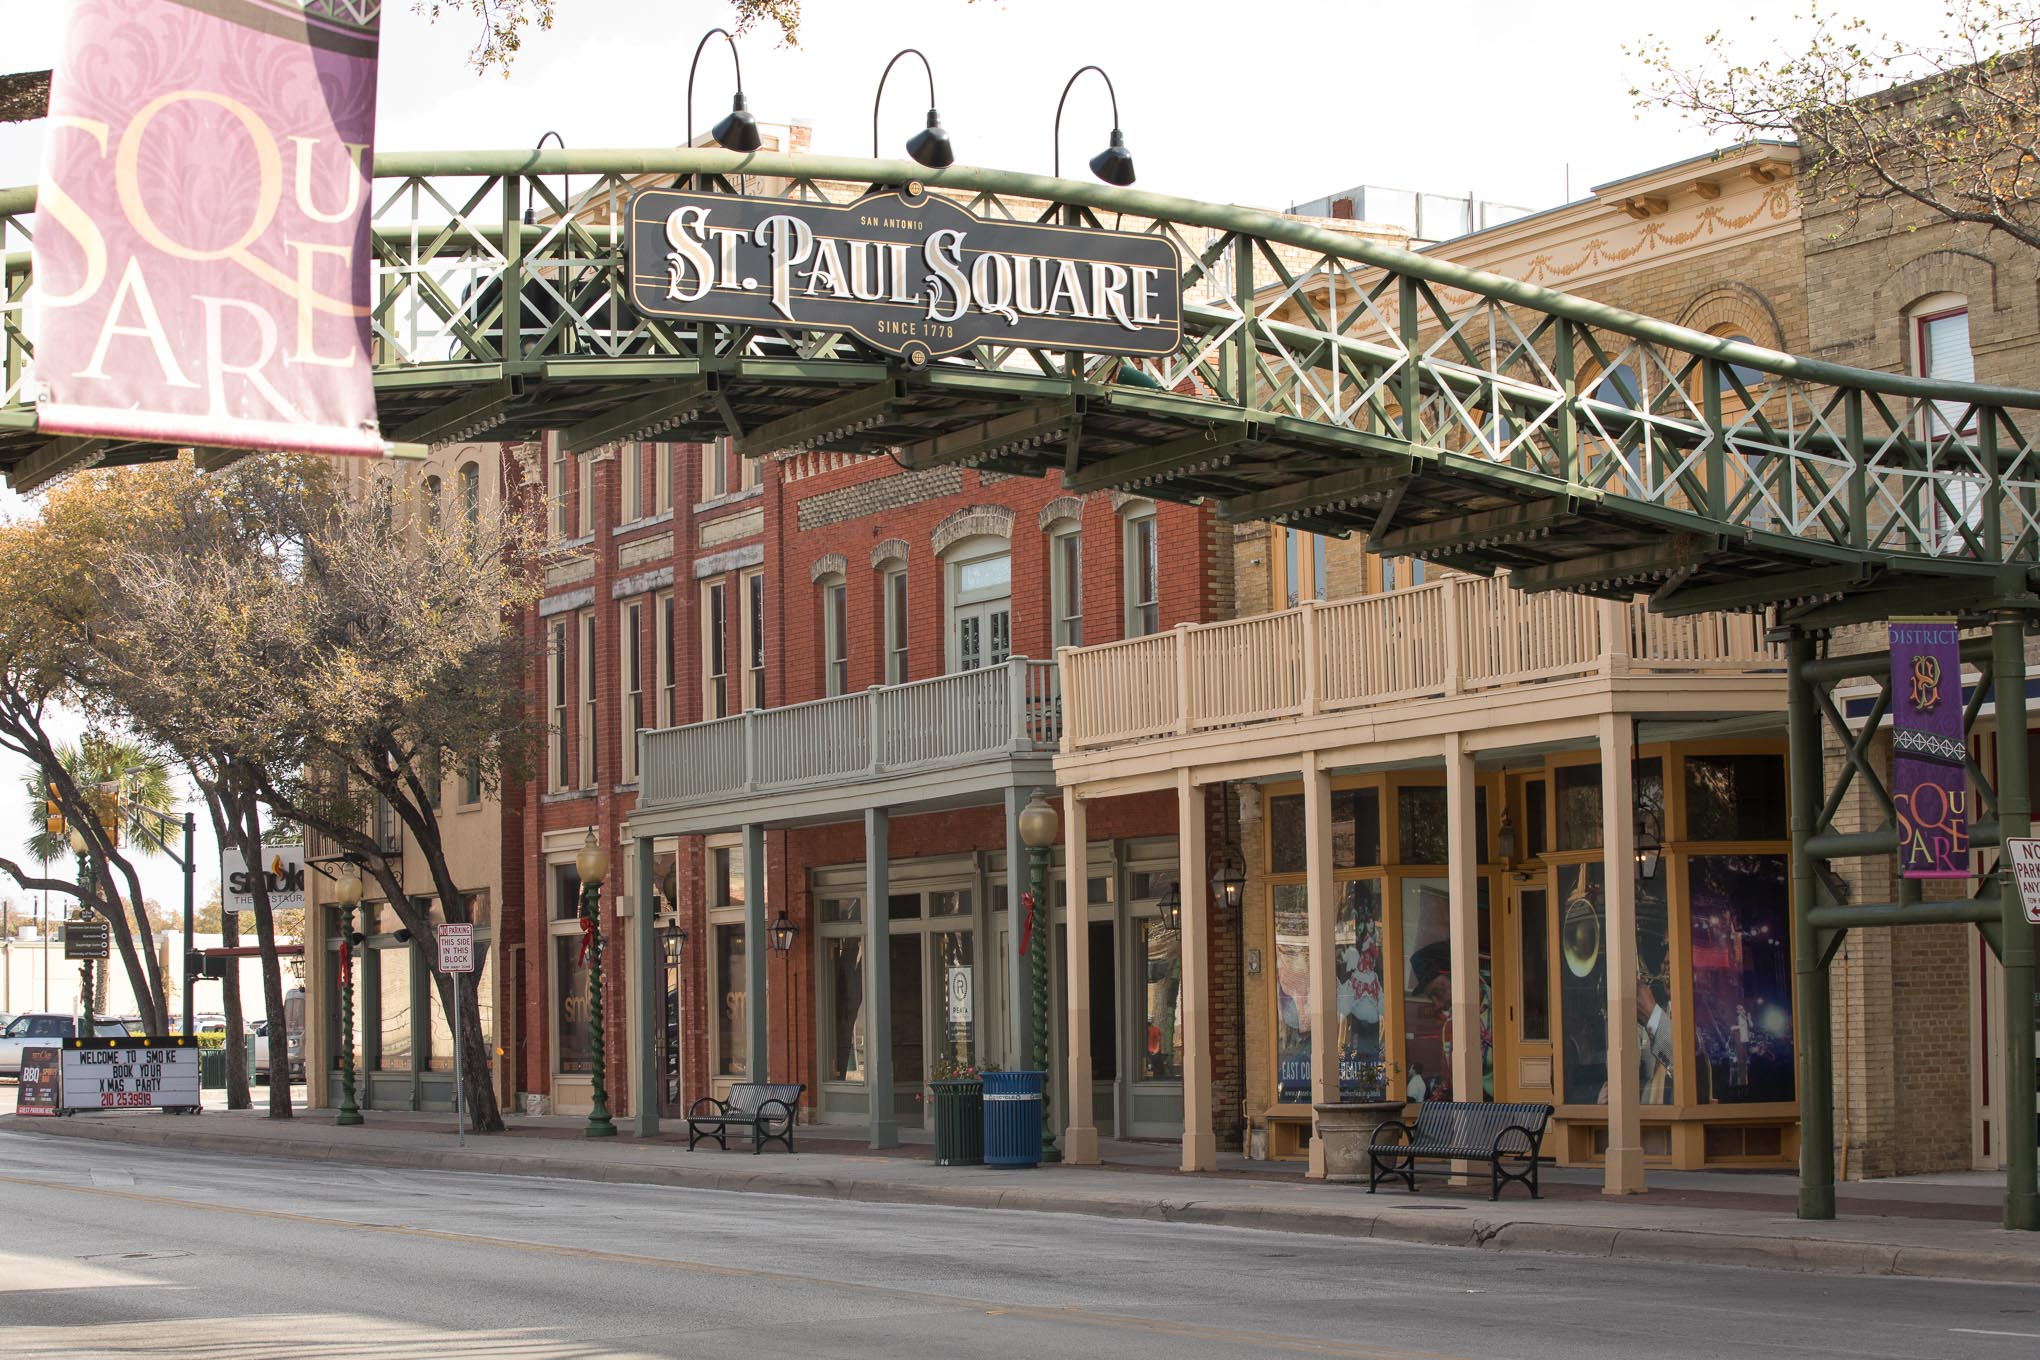 St. Paul Square lines both sides of Commerce Street just East of downtown San Antonio.